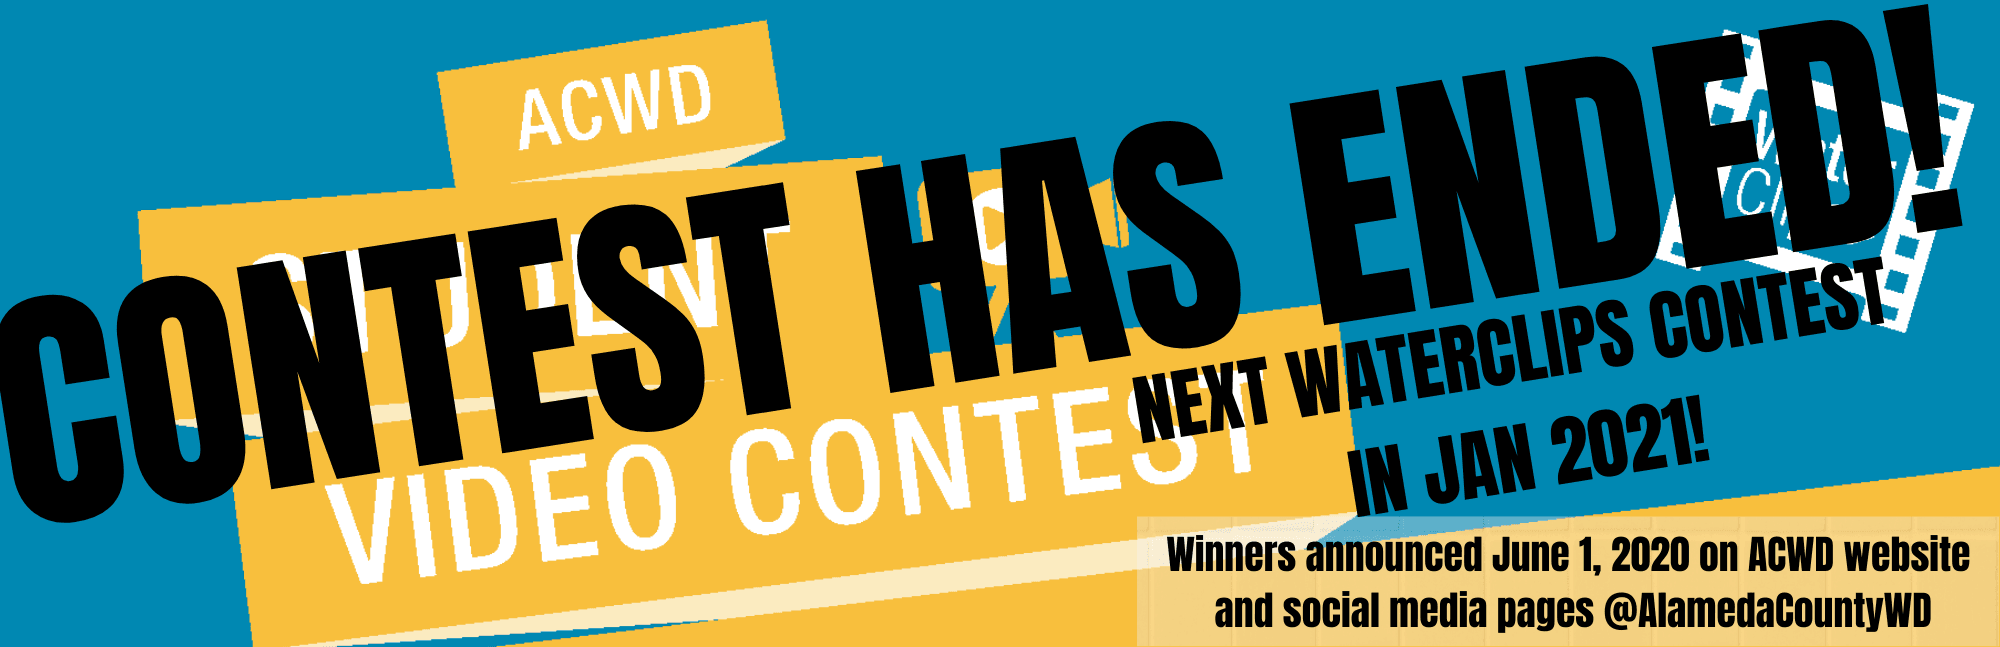 CONTEST HAS ENDED!